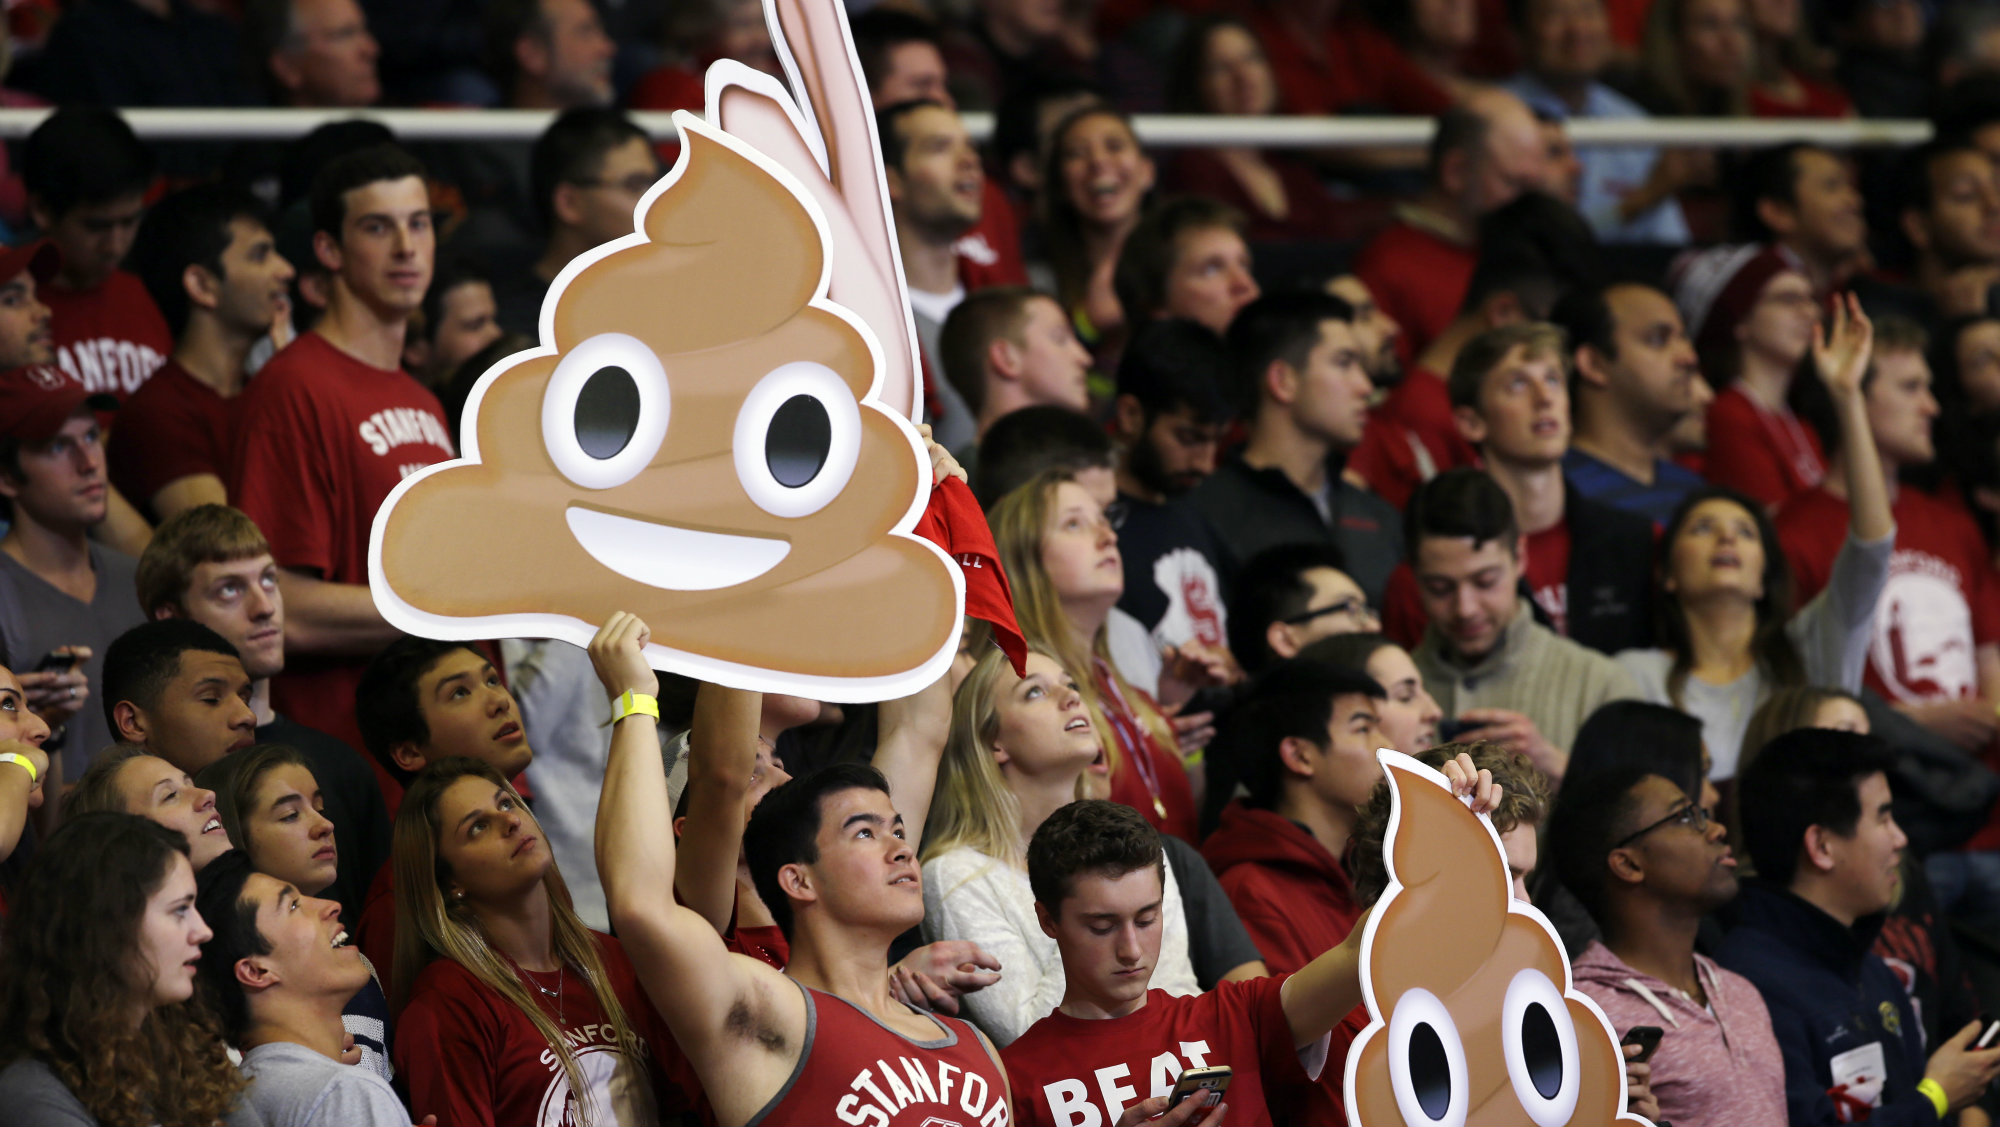 Fans hold emojis during the first half of an NCAA college basketball game between Stanford and California Thursday, Jan. 14, 2016, in Stanford, Calif.